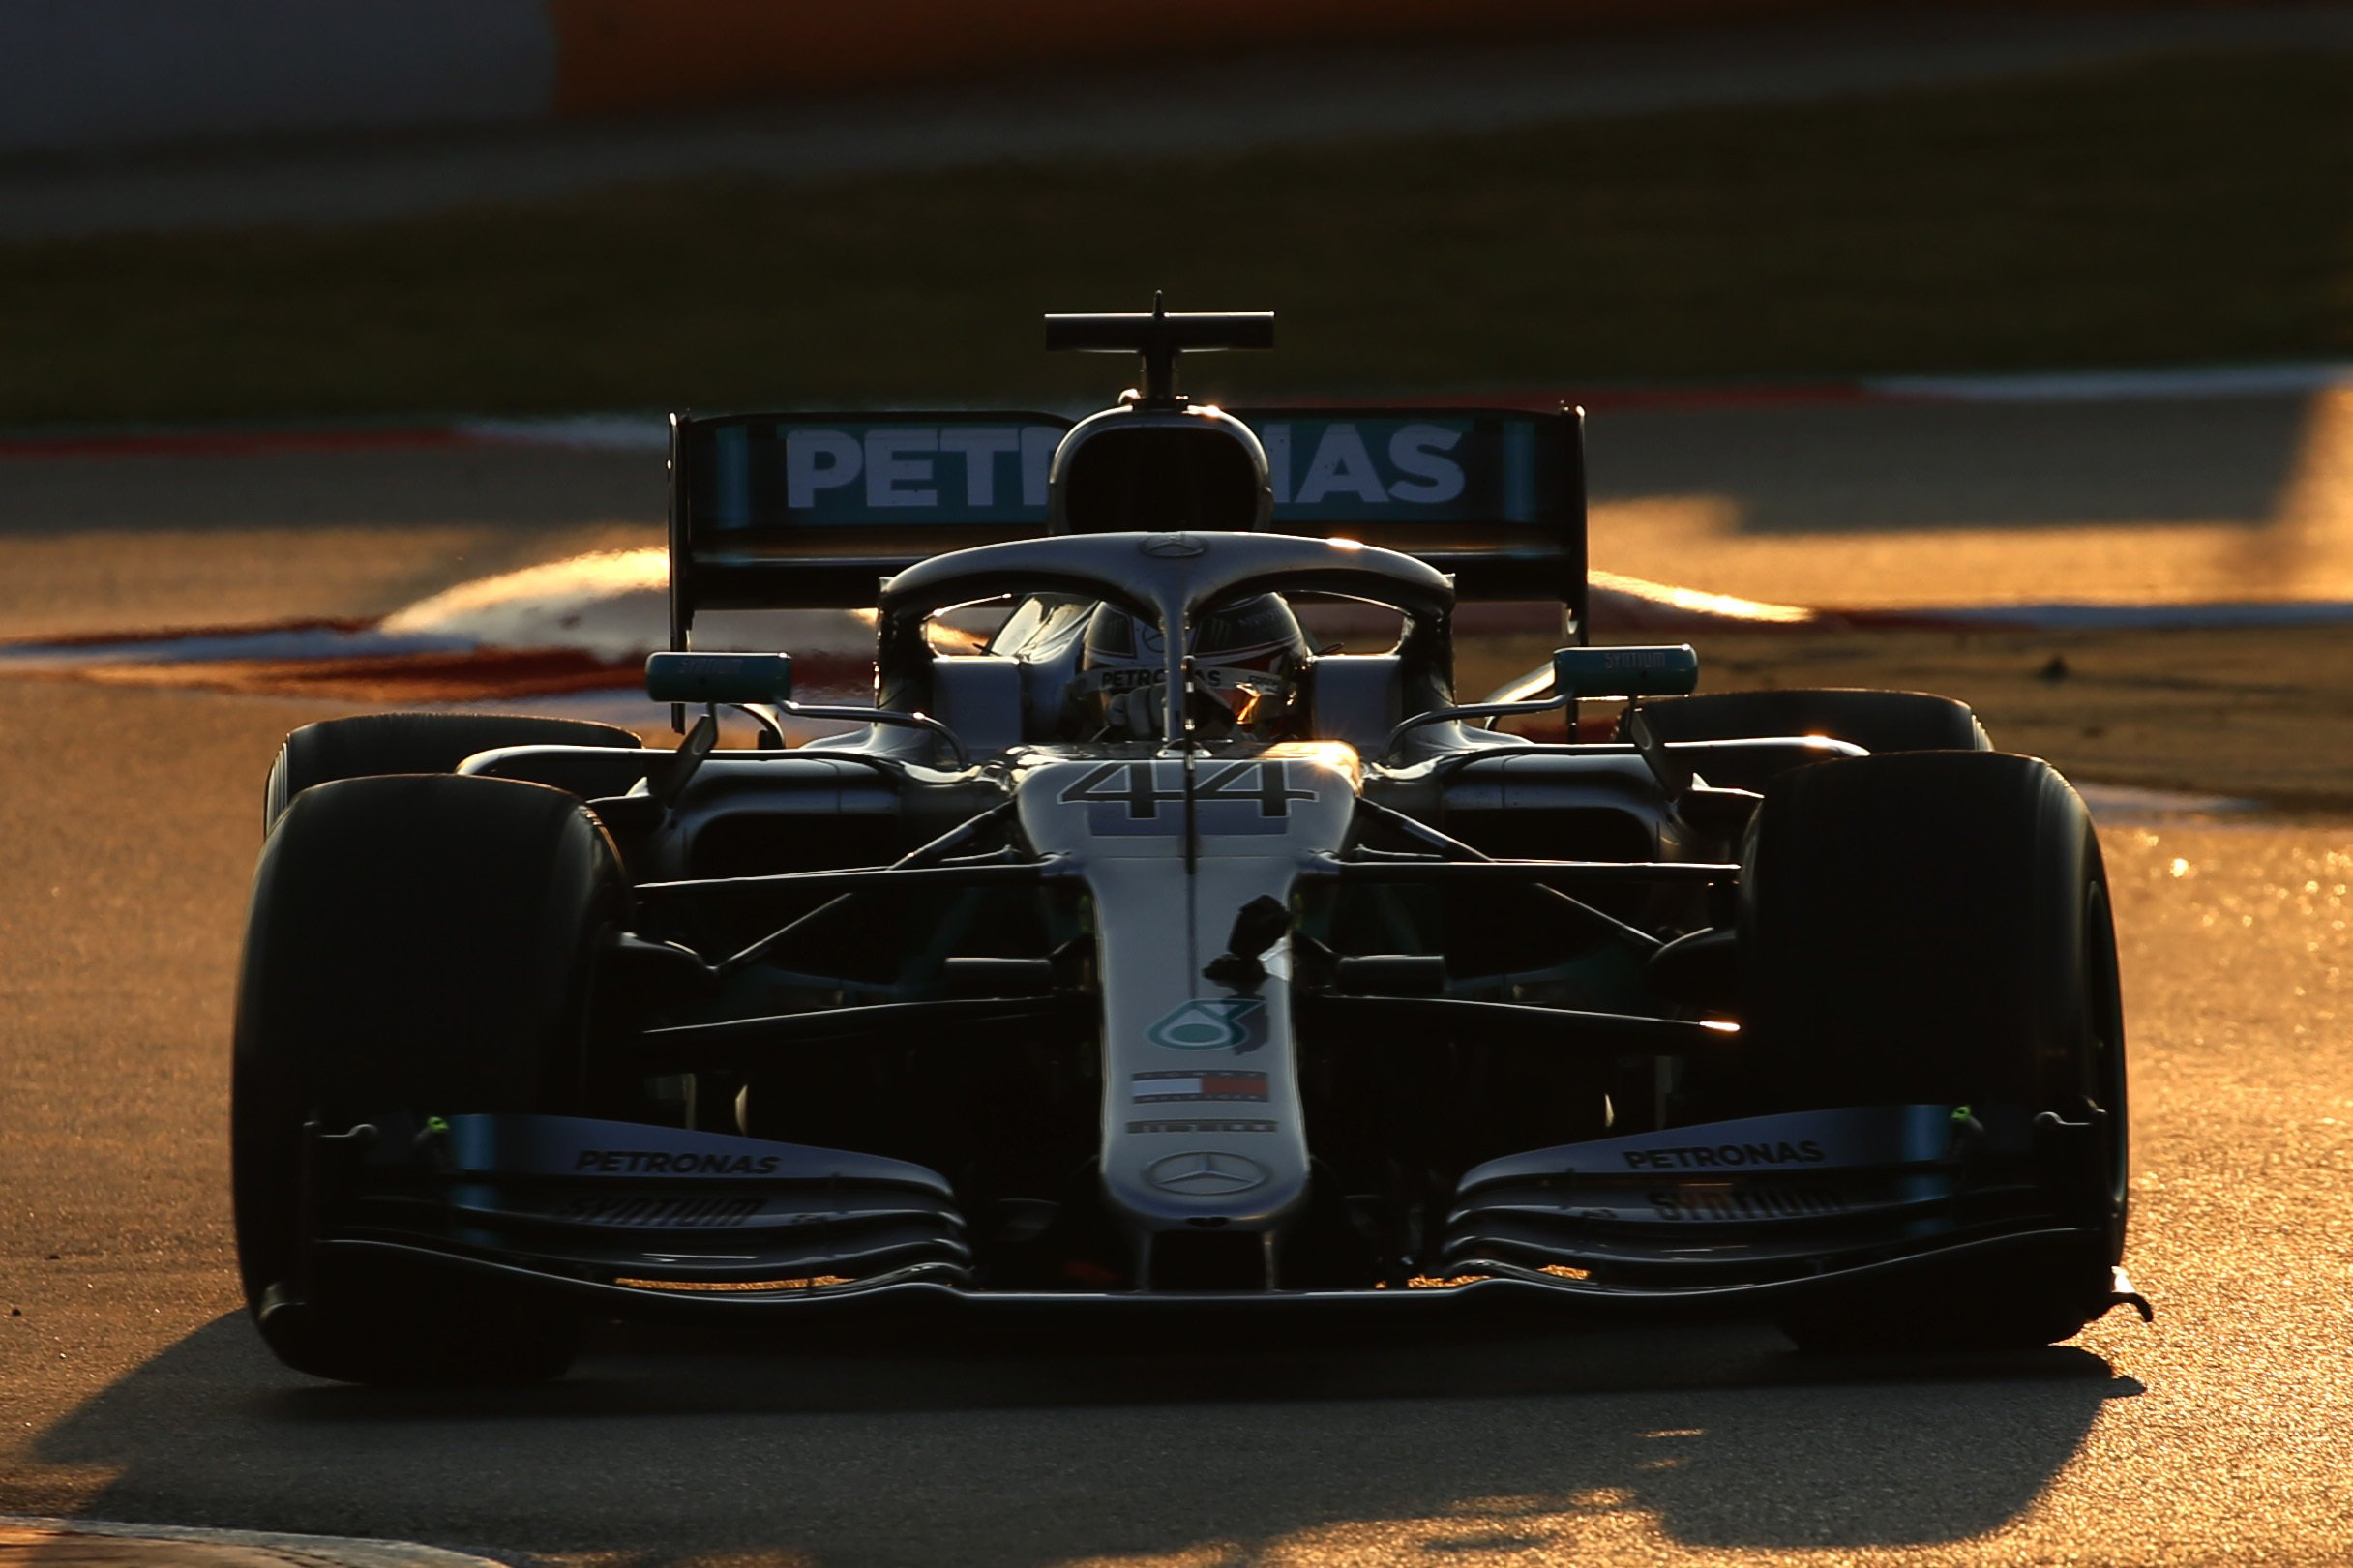 Financial questions hound 2 of F1's 3 races in North America